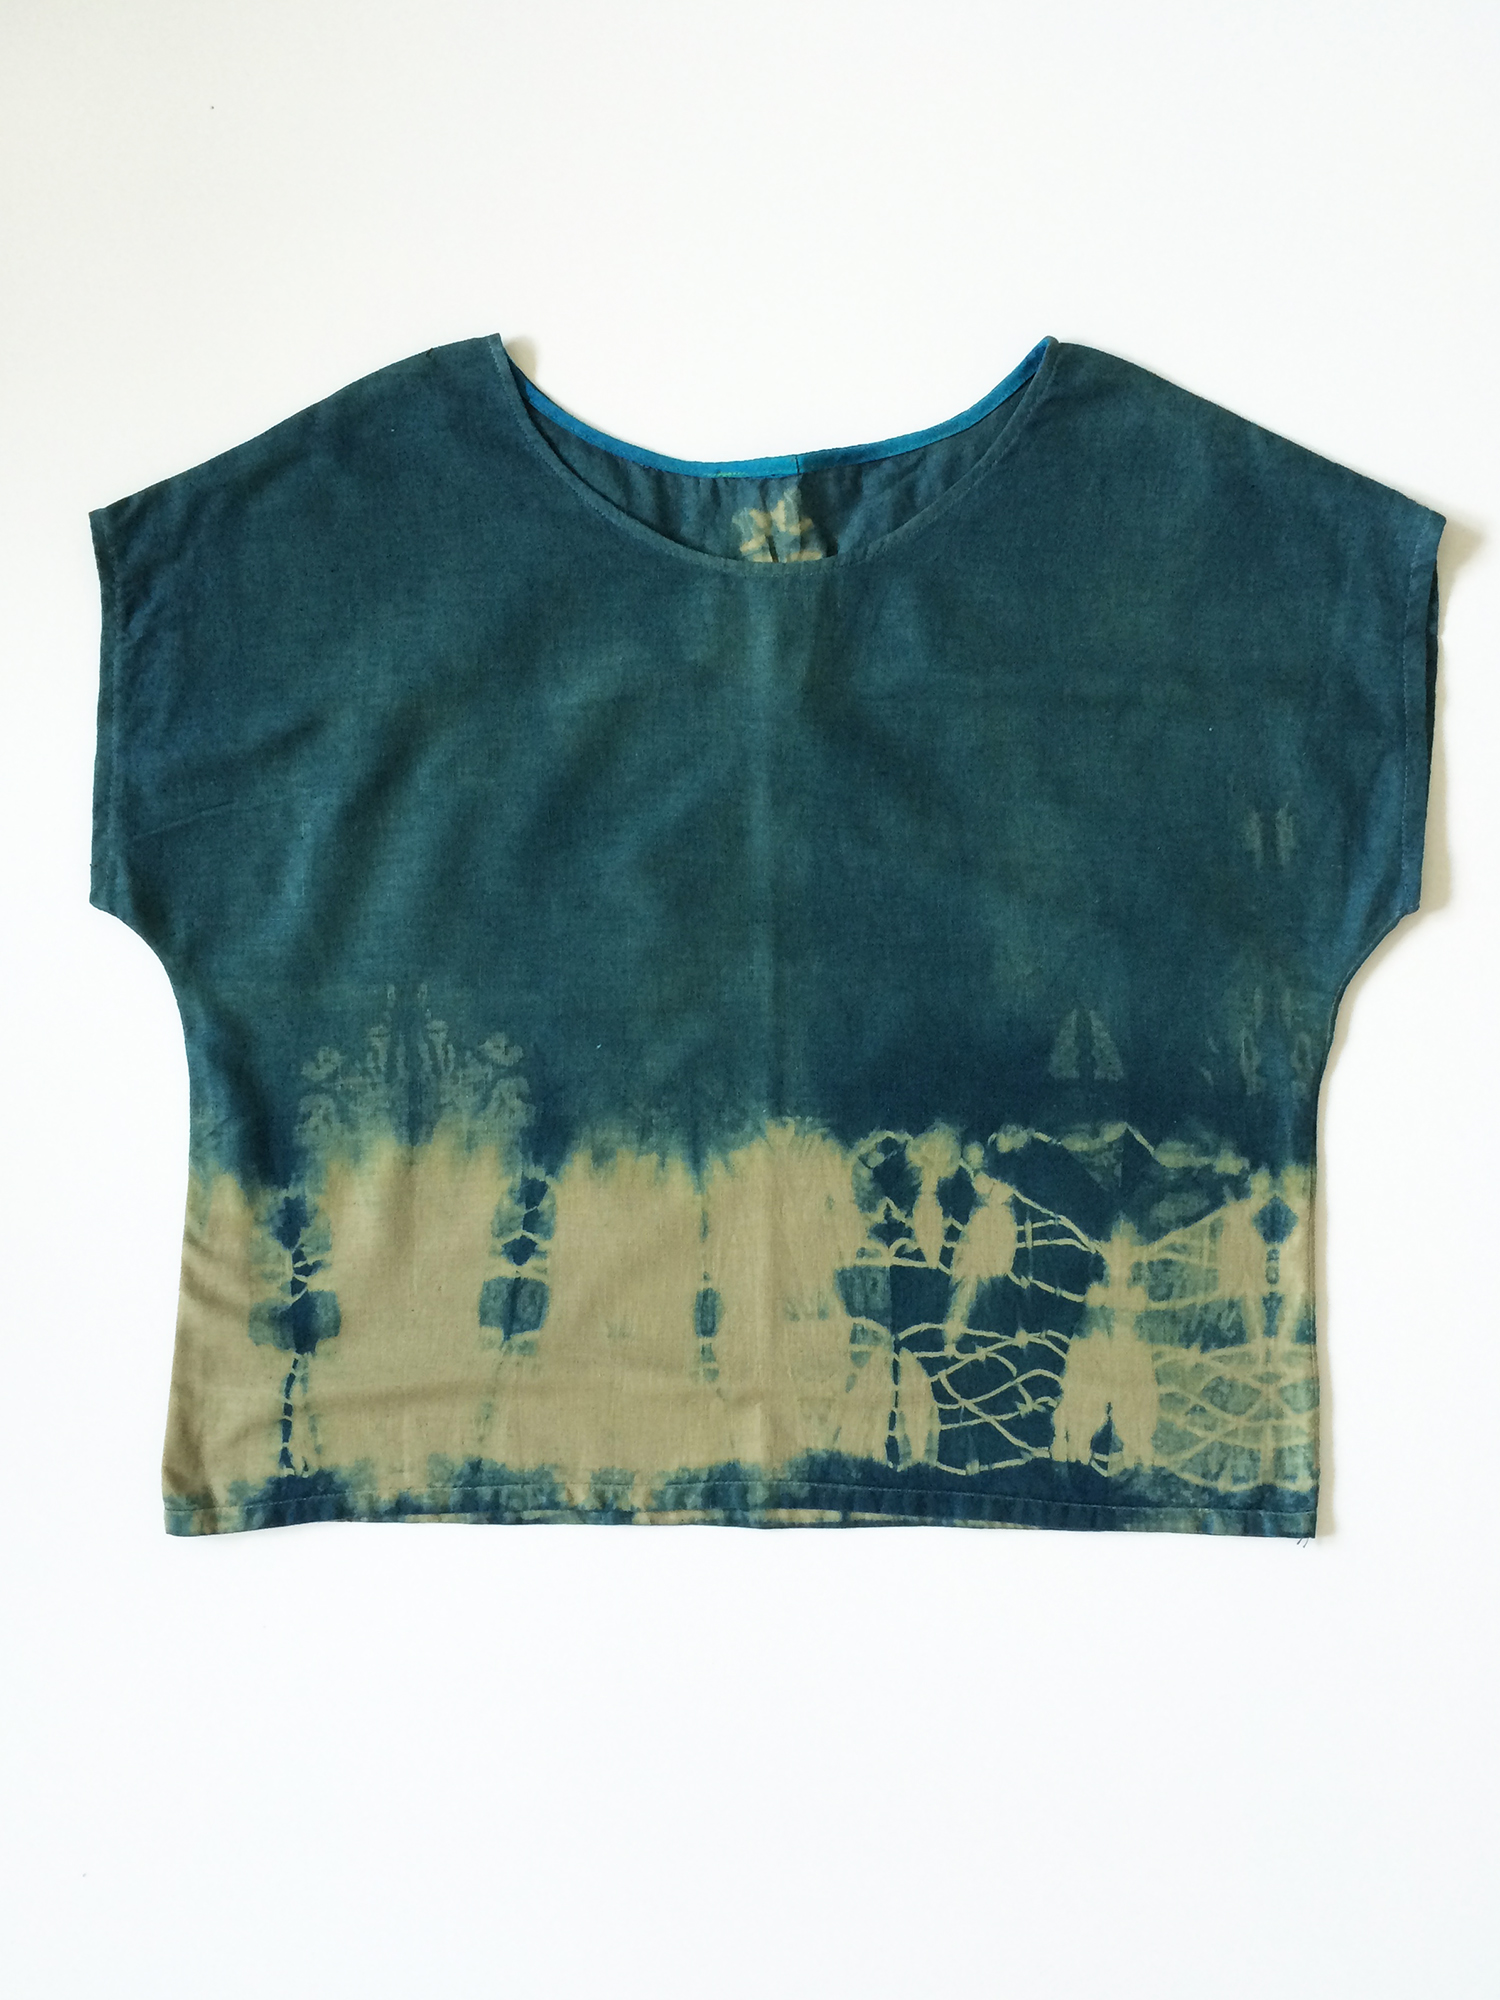 Indigo Box Top // Made from recycled cotton fabric and dyed with indigo. // July 2016